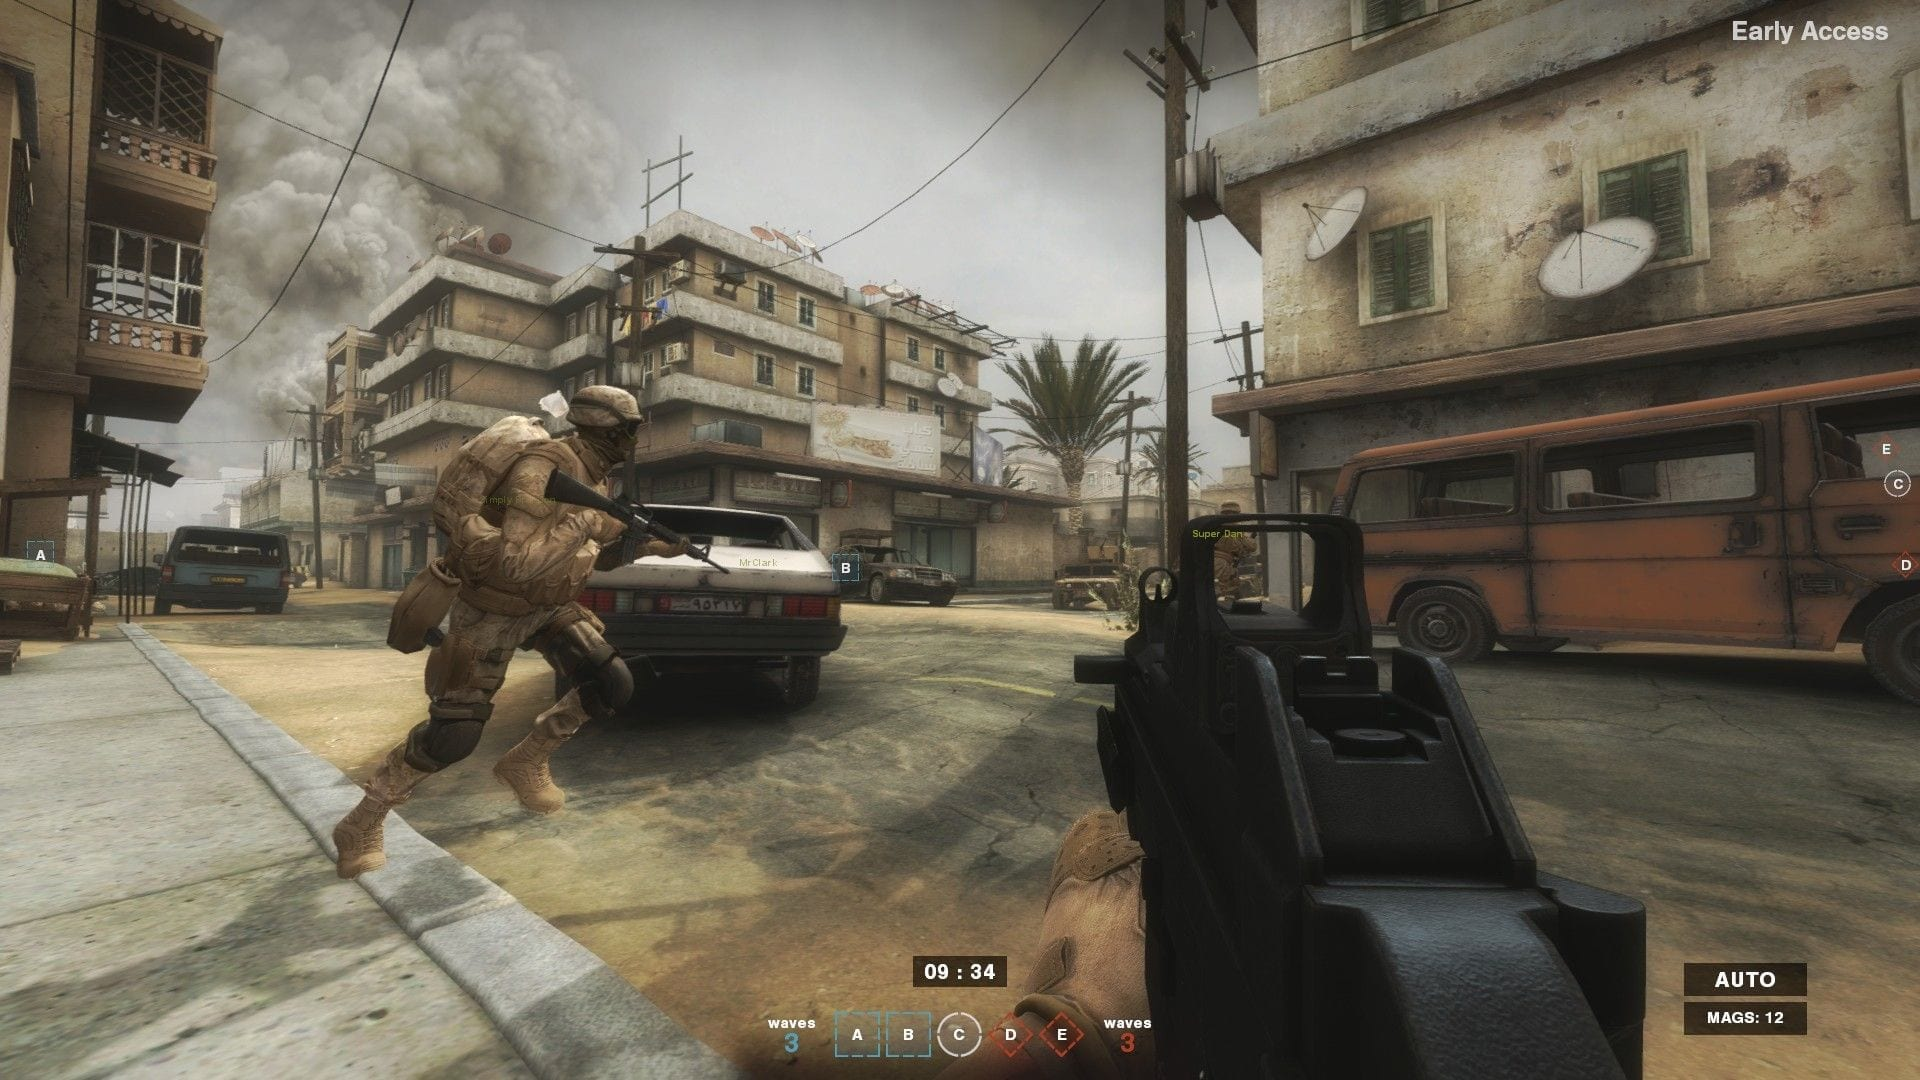 Game At A Glance: Insurgency